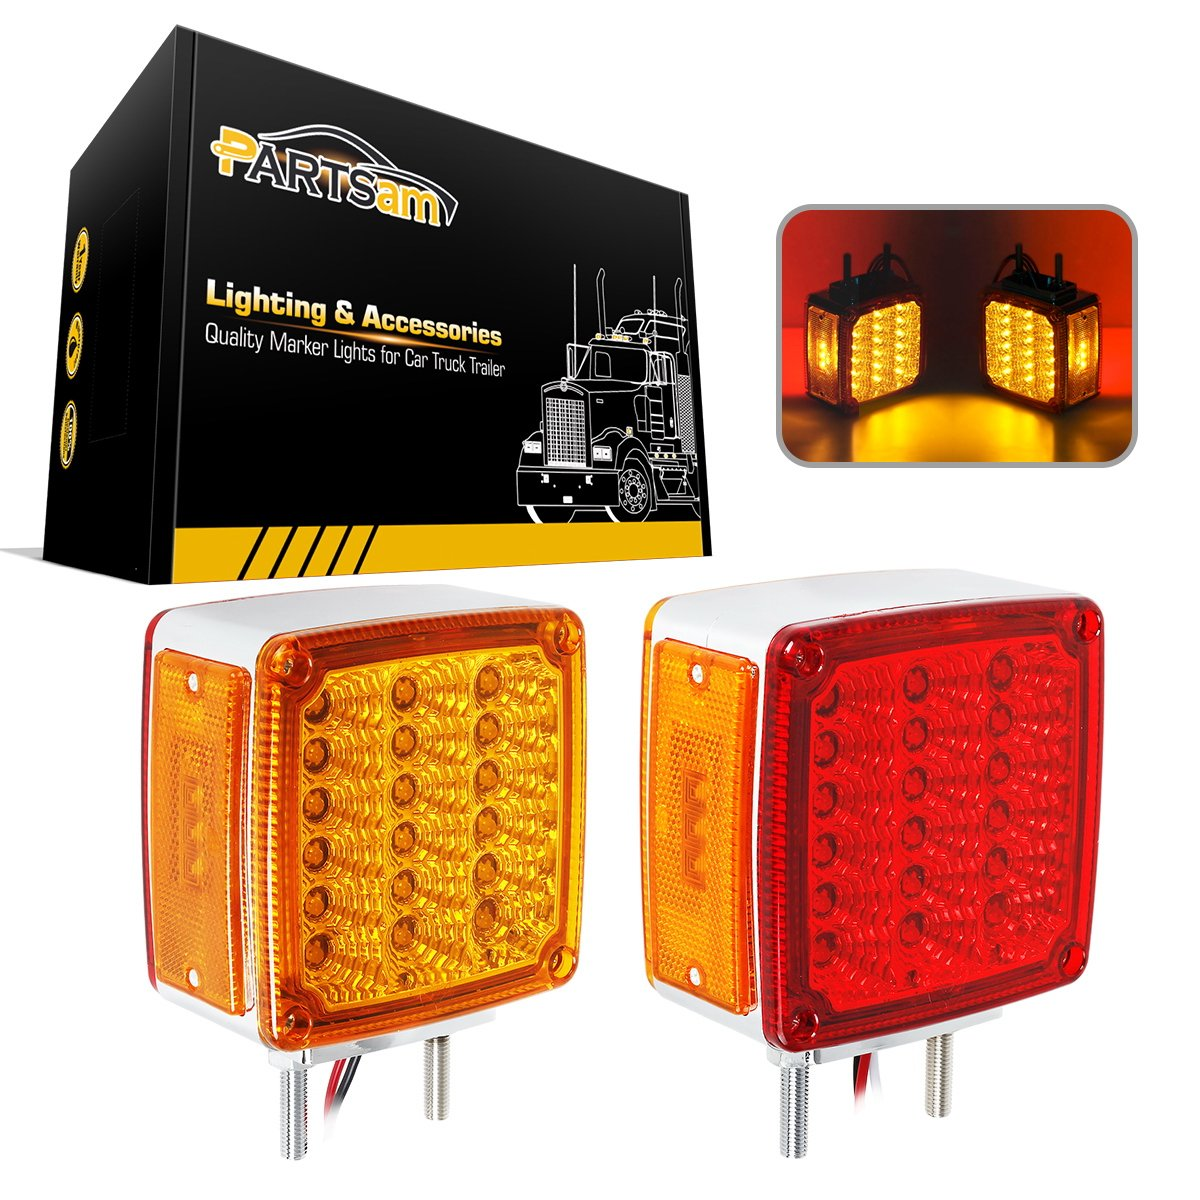 Partsam 2x Truck Trailer Square Double Face Pedestal Stop Turn Tail Light Amber/Red 39 LED for Peterbilt Freightliner Kenworth Mack Western Star UMS LED-2F